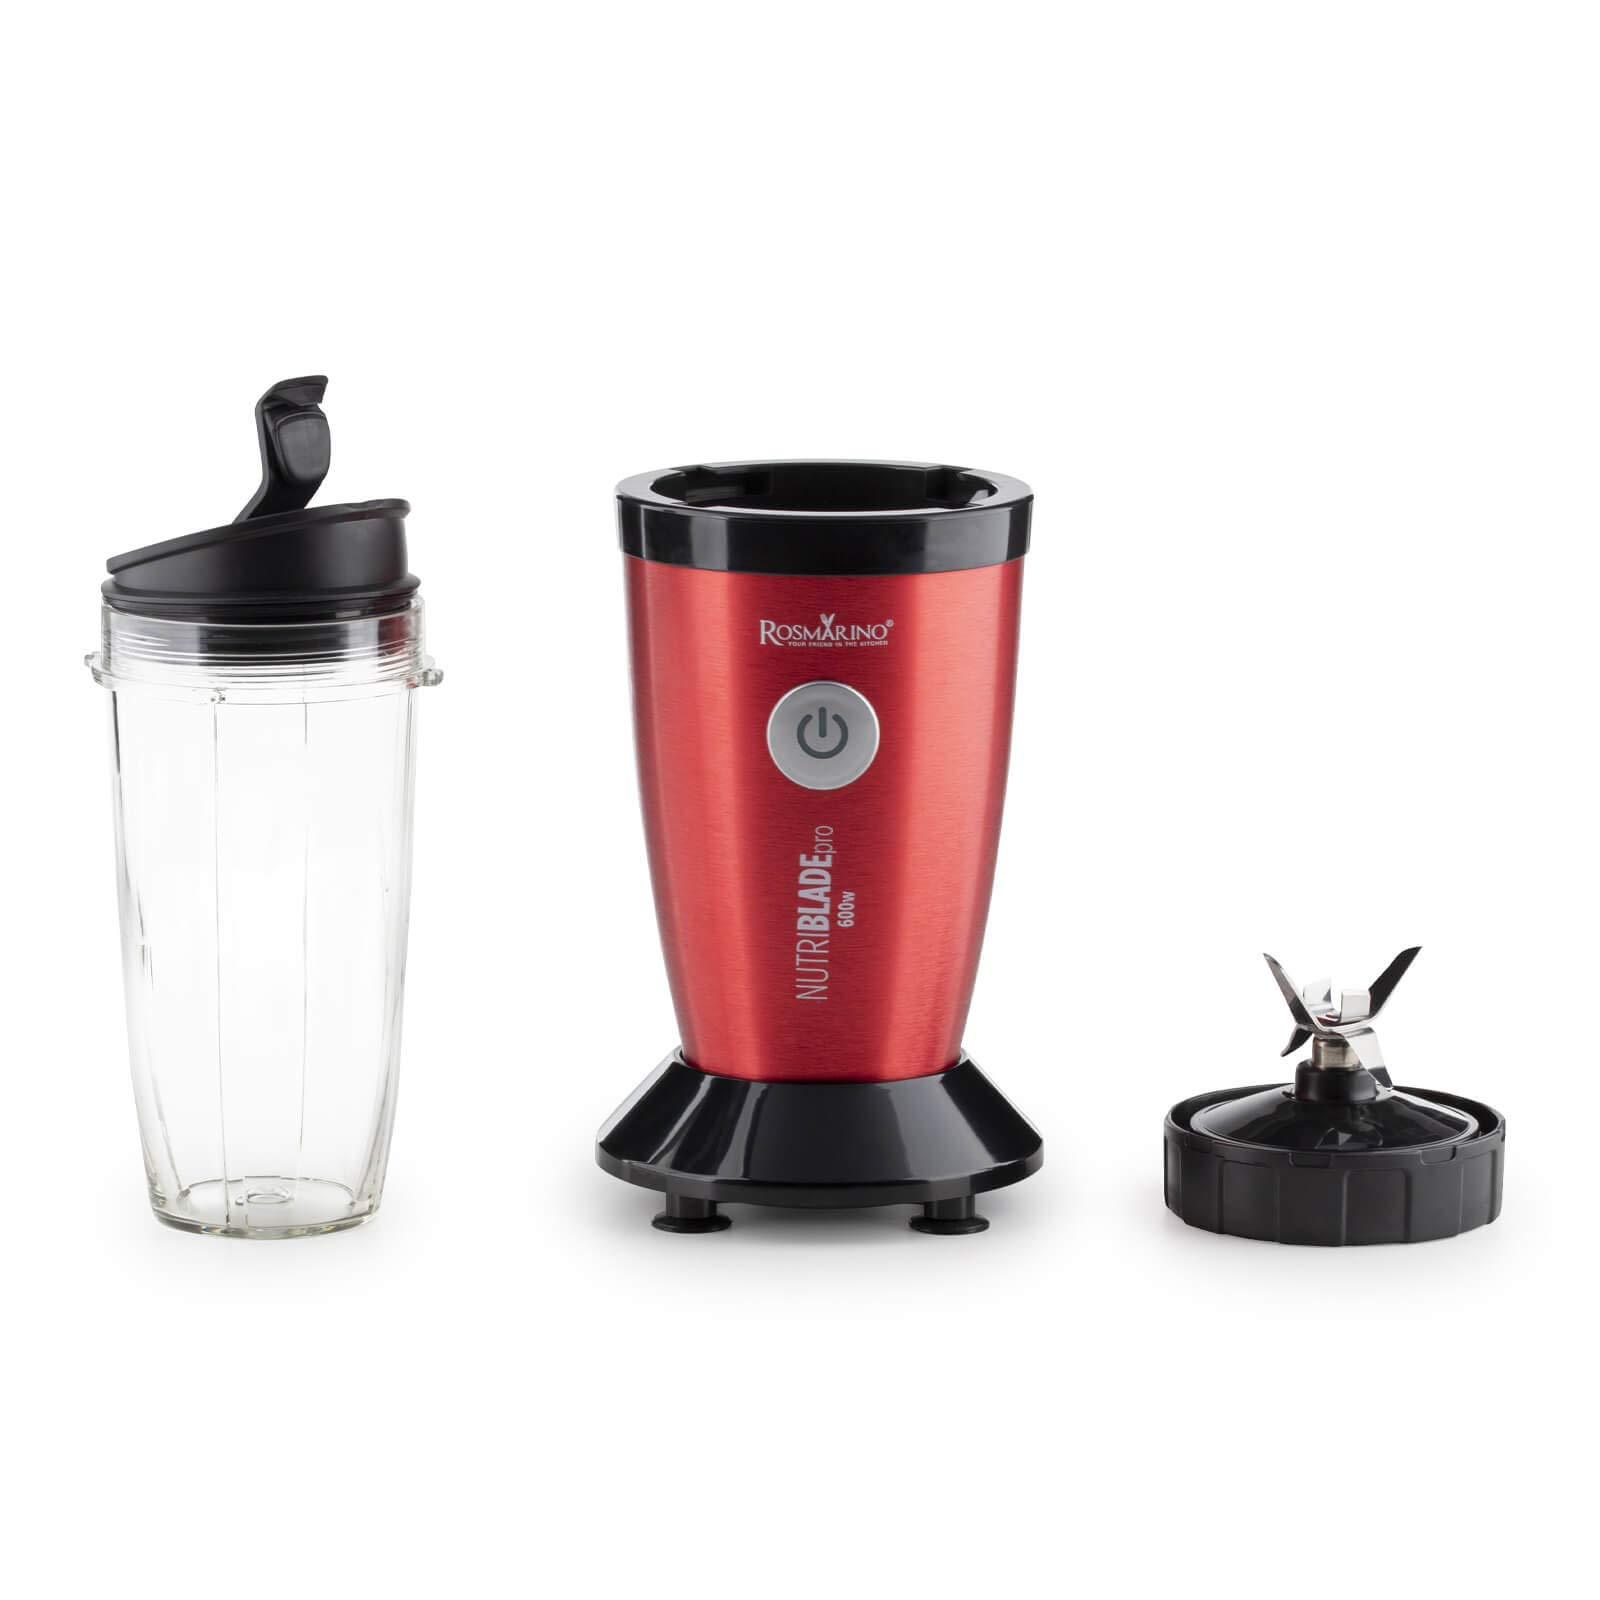 Rosmarino Personal Smoothie Blender & Smoothie Maker 700ml (23 oz.) with  Cup to Go - Perfect for Milkshake, Smoothies, Ice, Fruit & Vegetables  Drinks (Red): Amazon.co.uk: Kitchen & Home